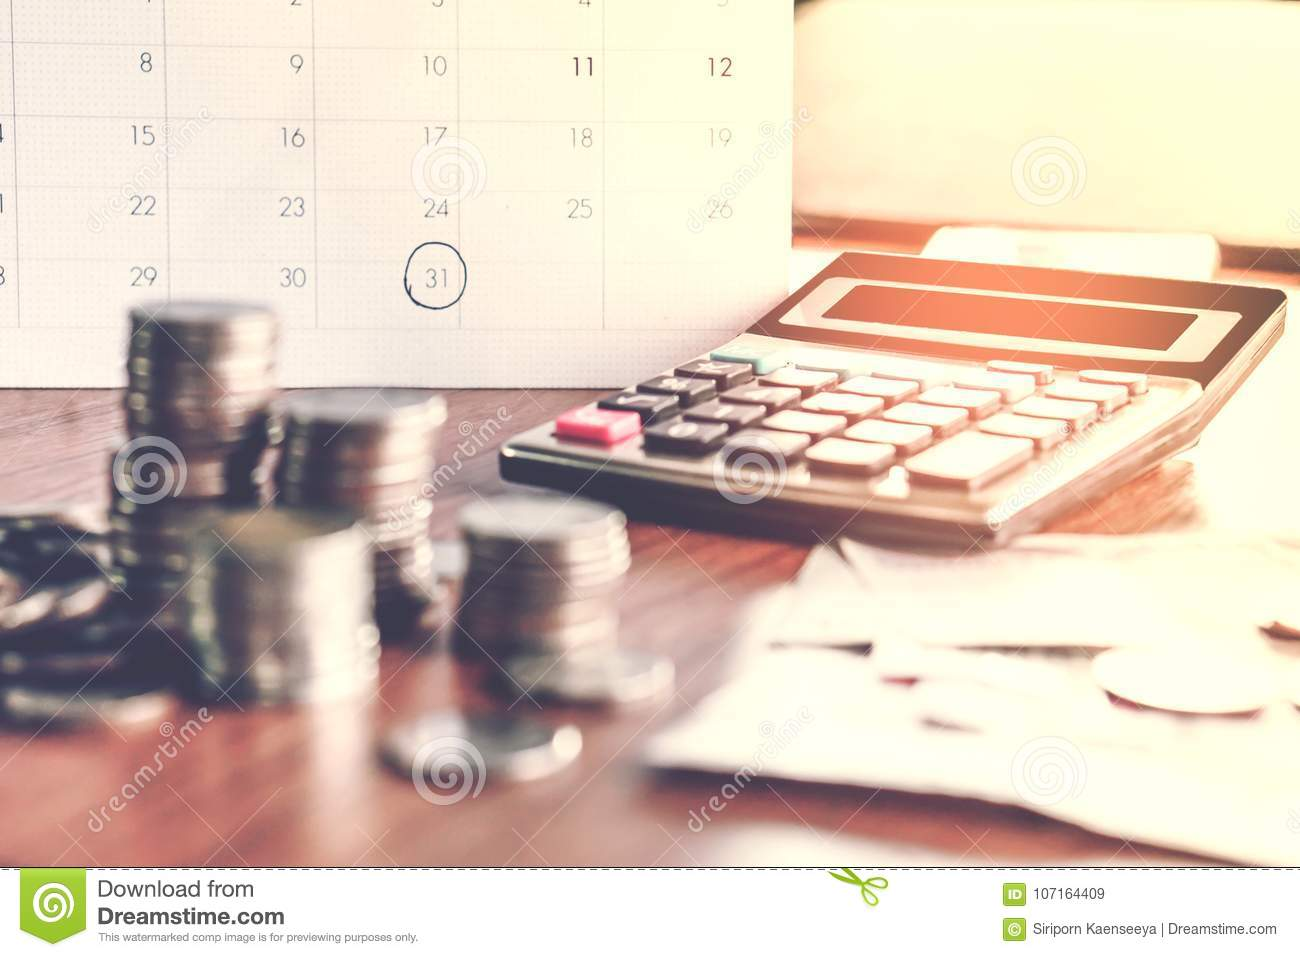 Debt collection and tax season concept with deadline calendar remind note,coins,banks,calculator on table